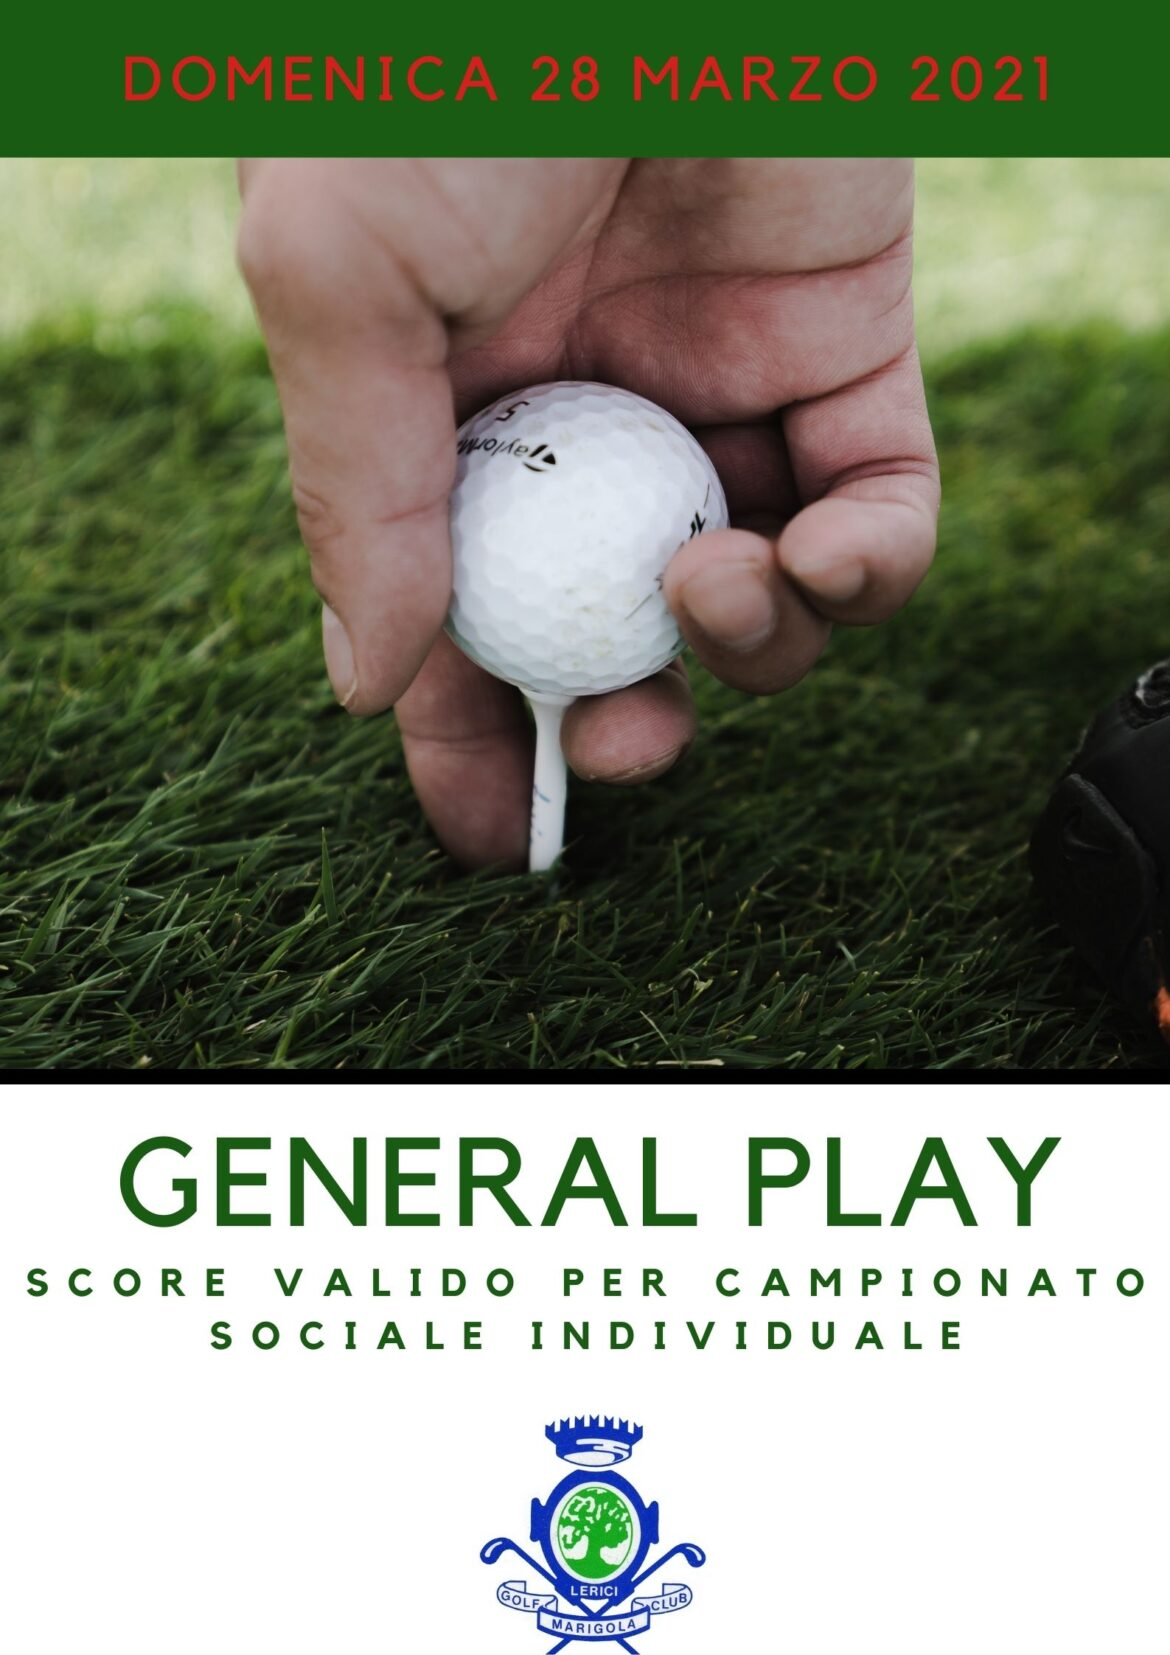 GENERAL PLAY DEL 28 MARZO 2021